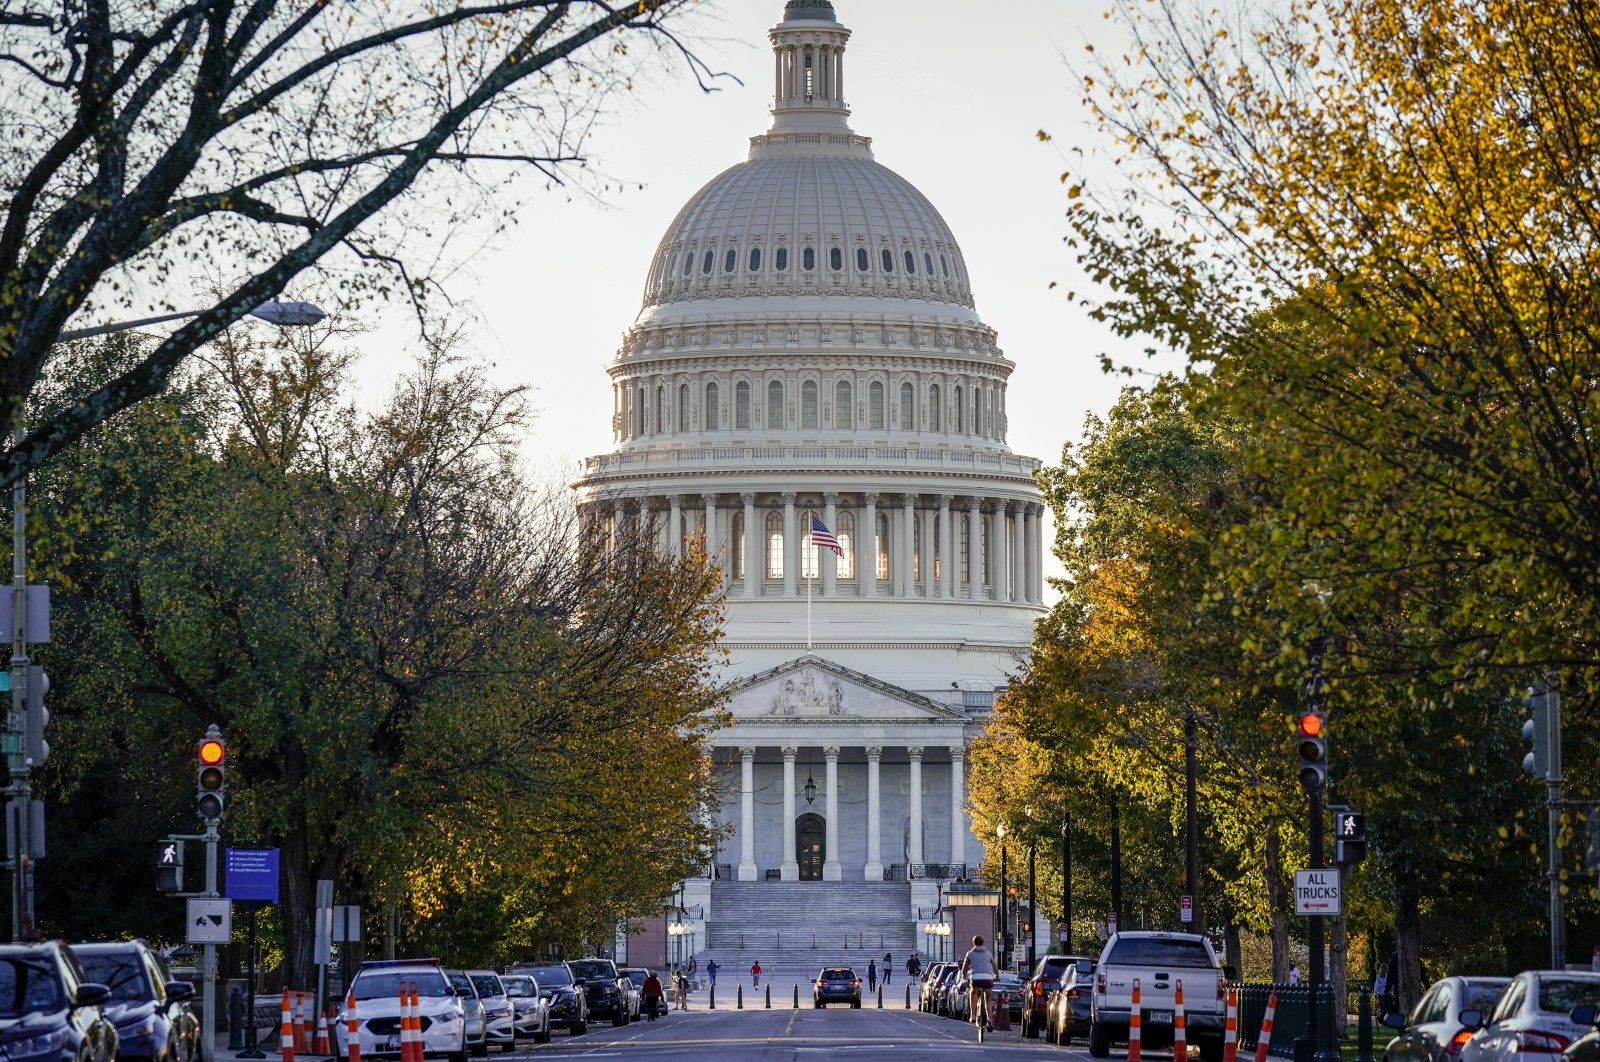 The East Front of the Capitol is seen in Washington, Wednesday, Nov. 4, 2020. (AP Photo)